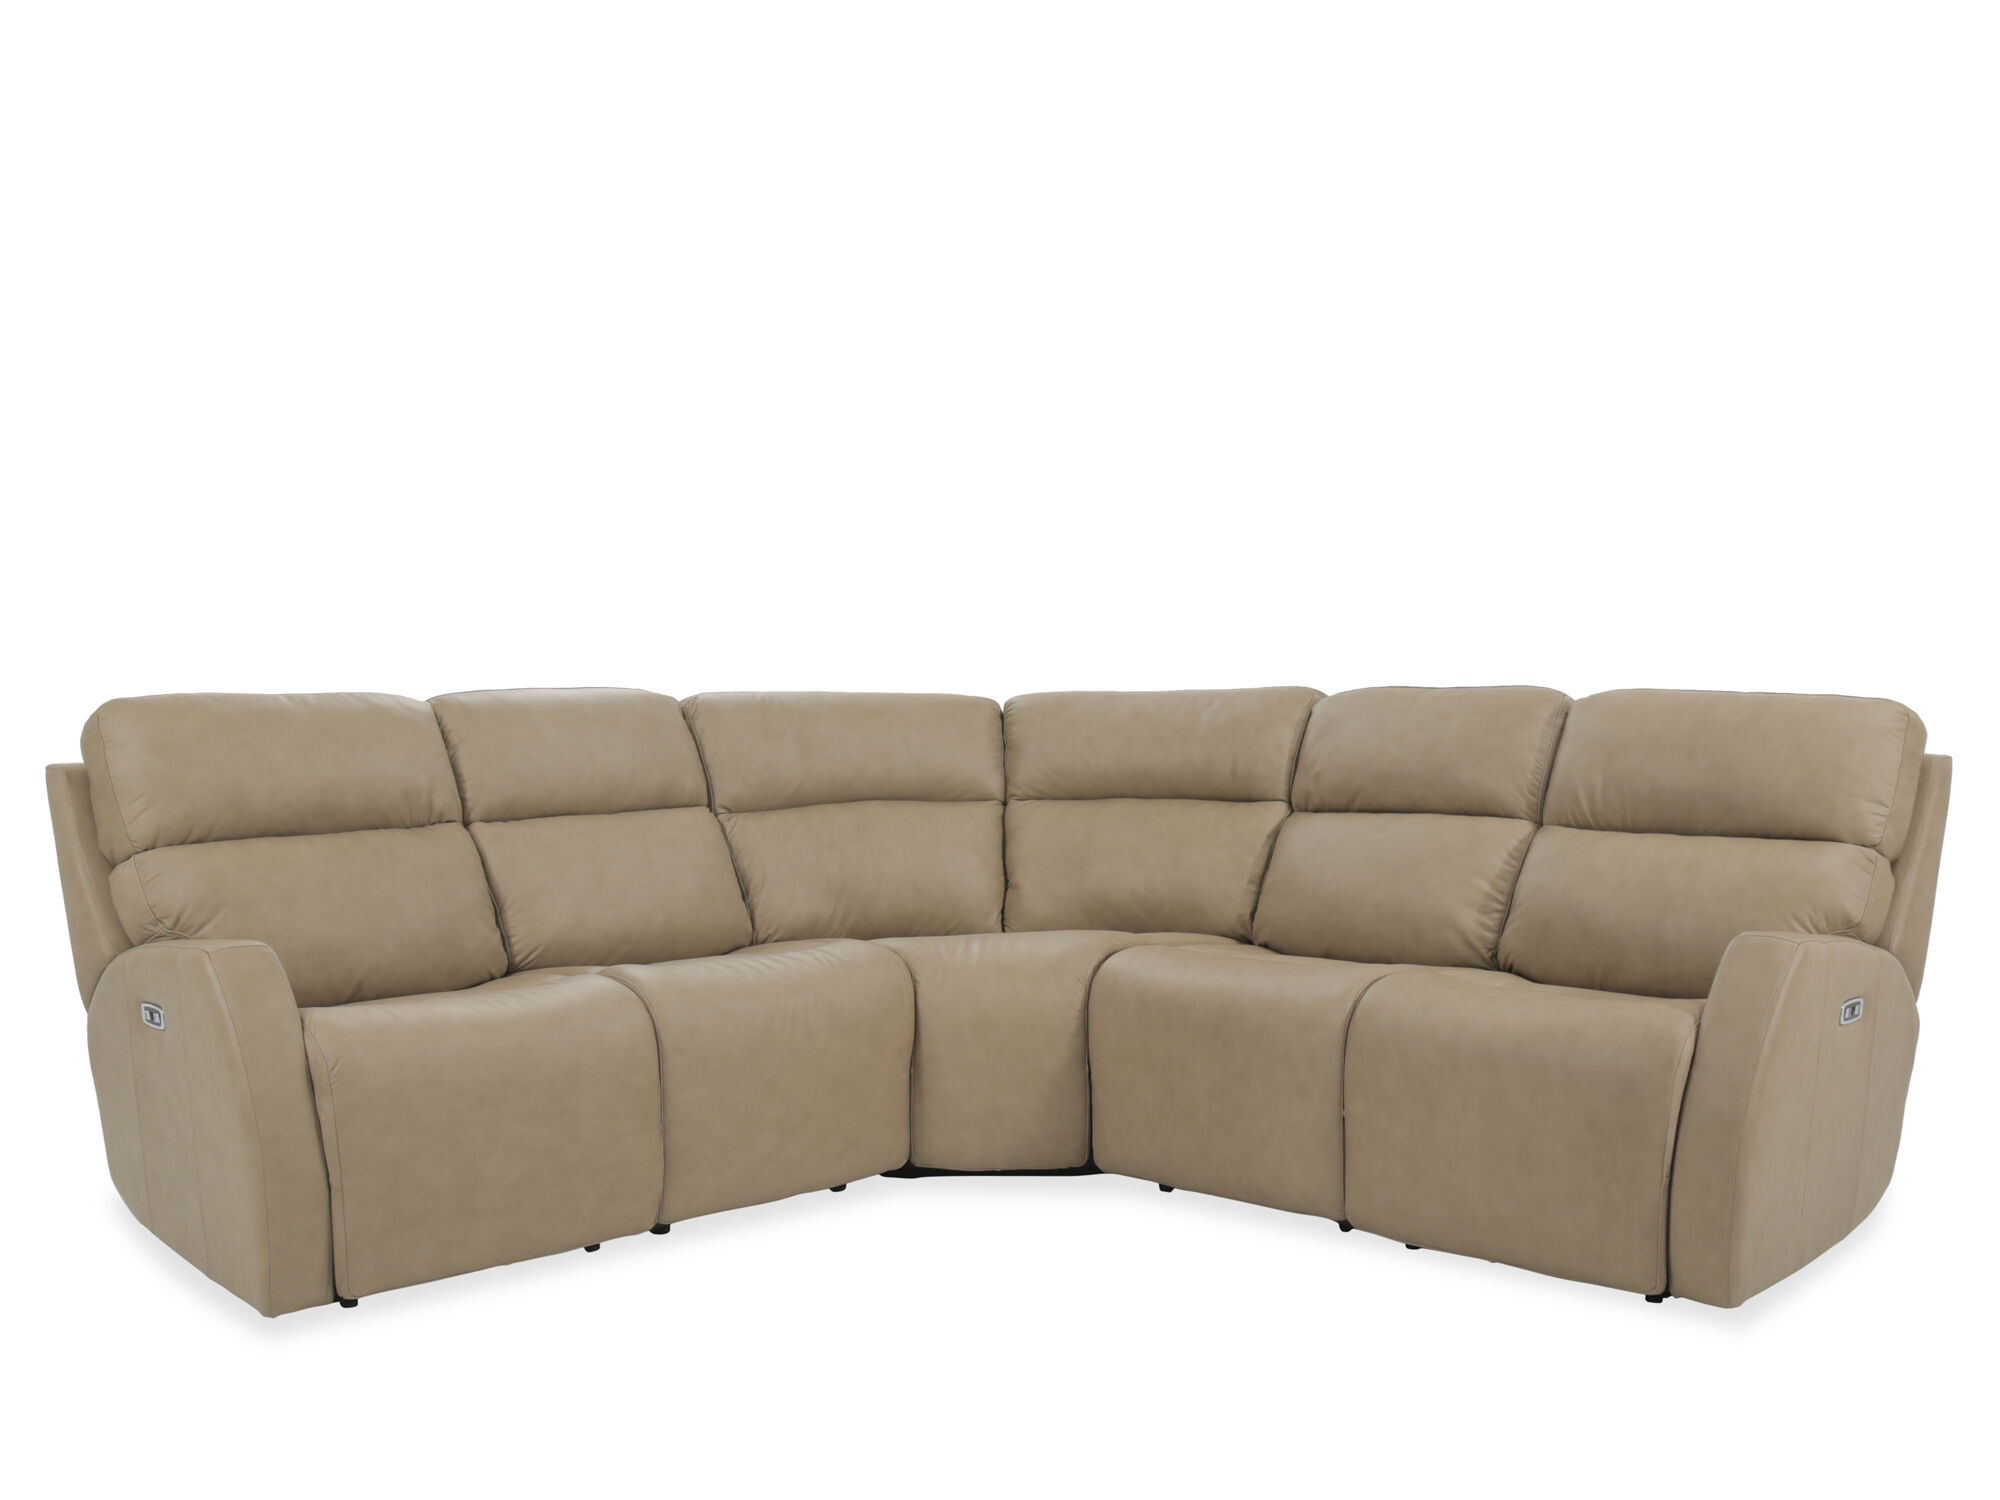 light brown leather reclining sofa sleeper reviews 2017 three piece 107 quot power sectional in